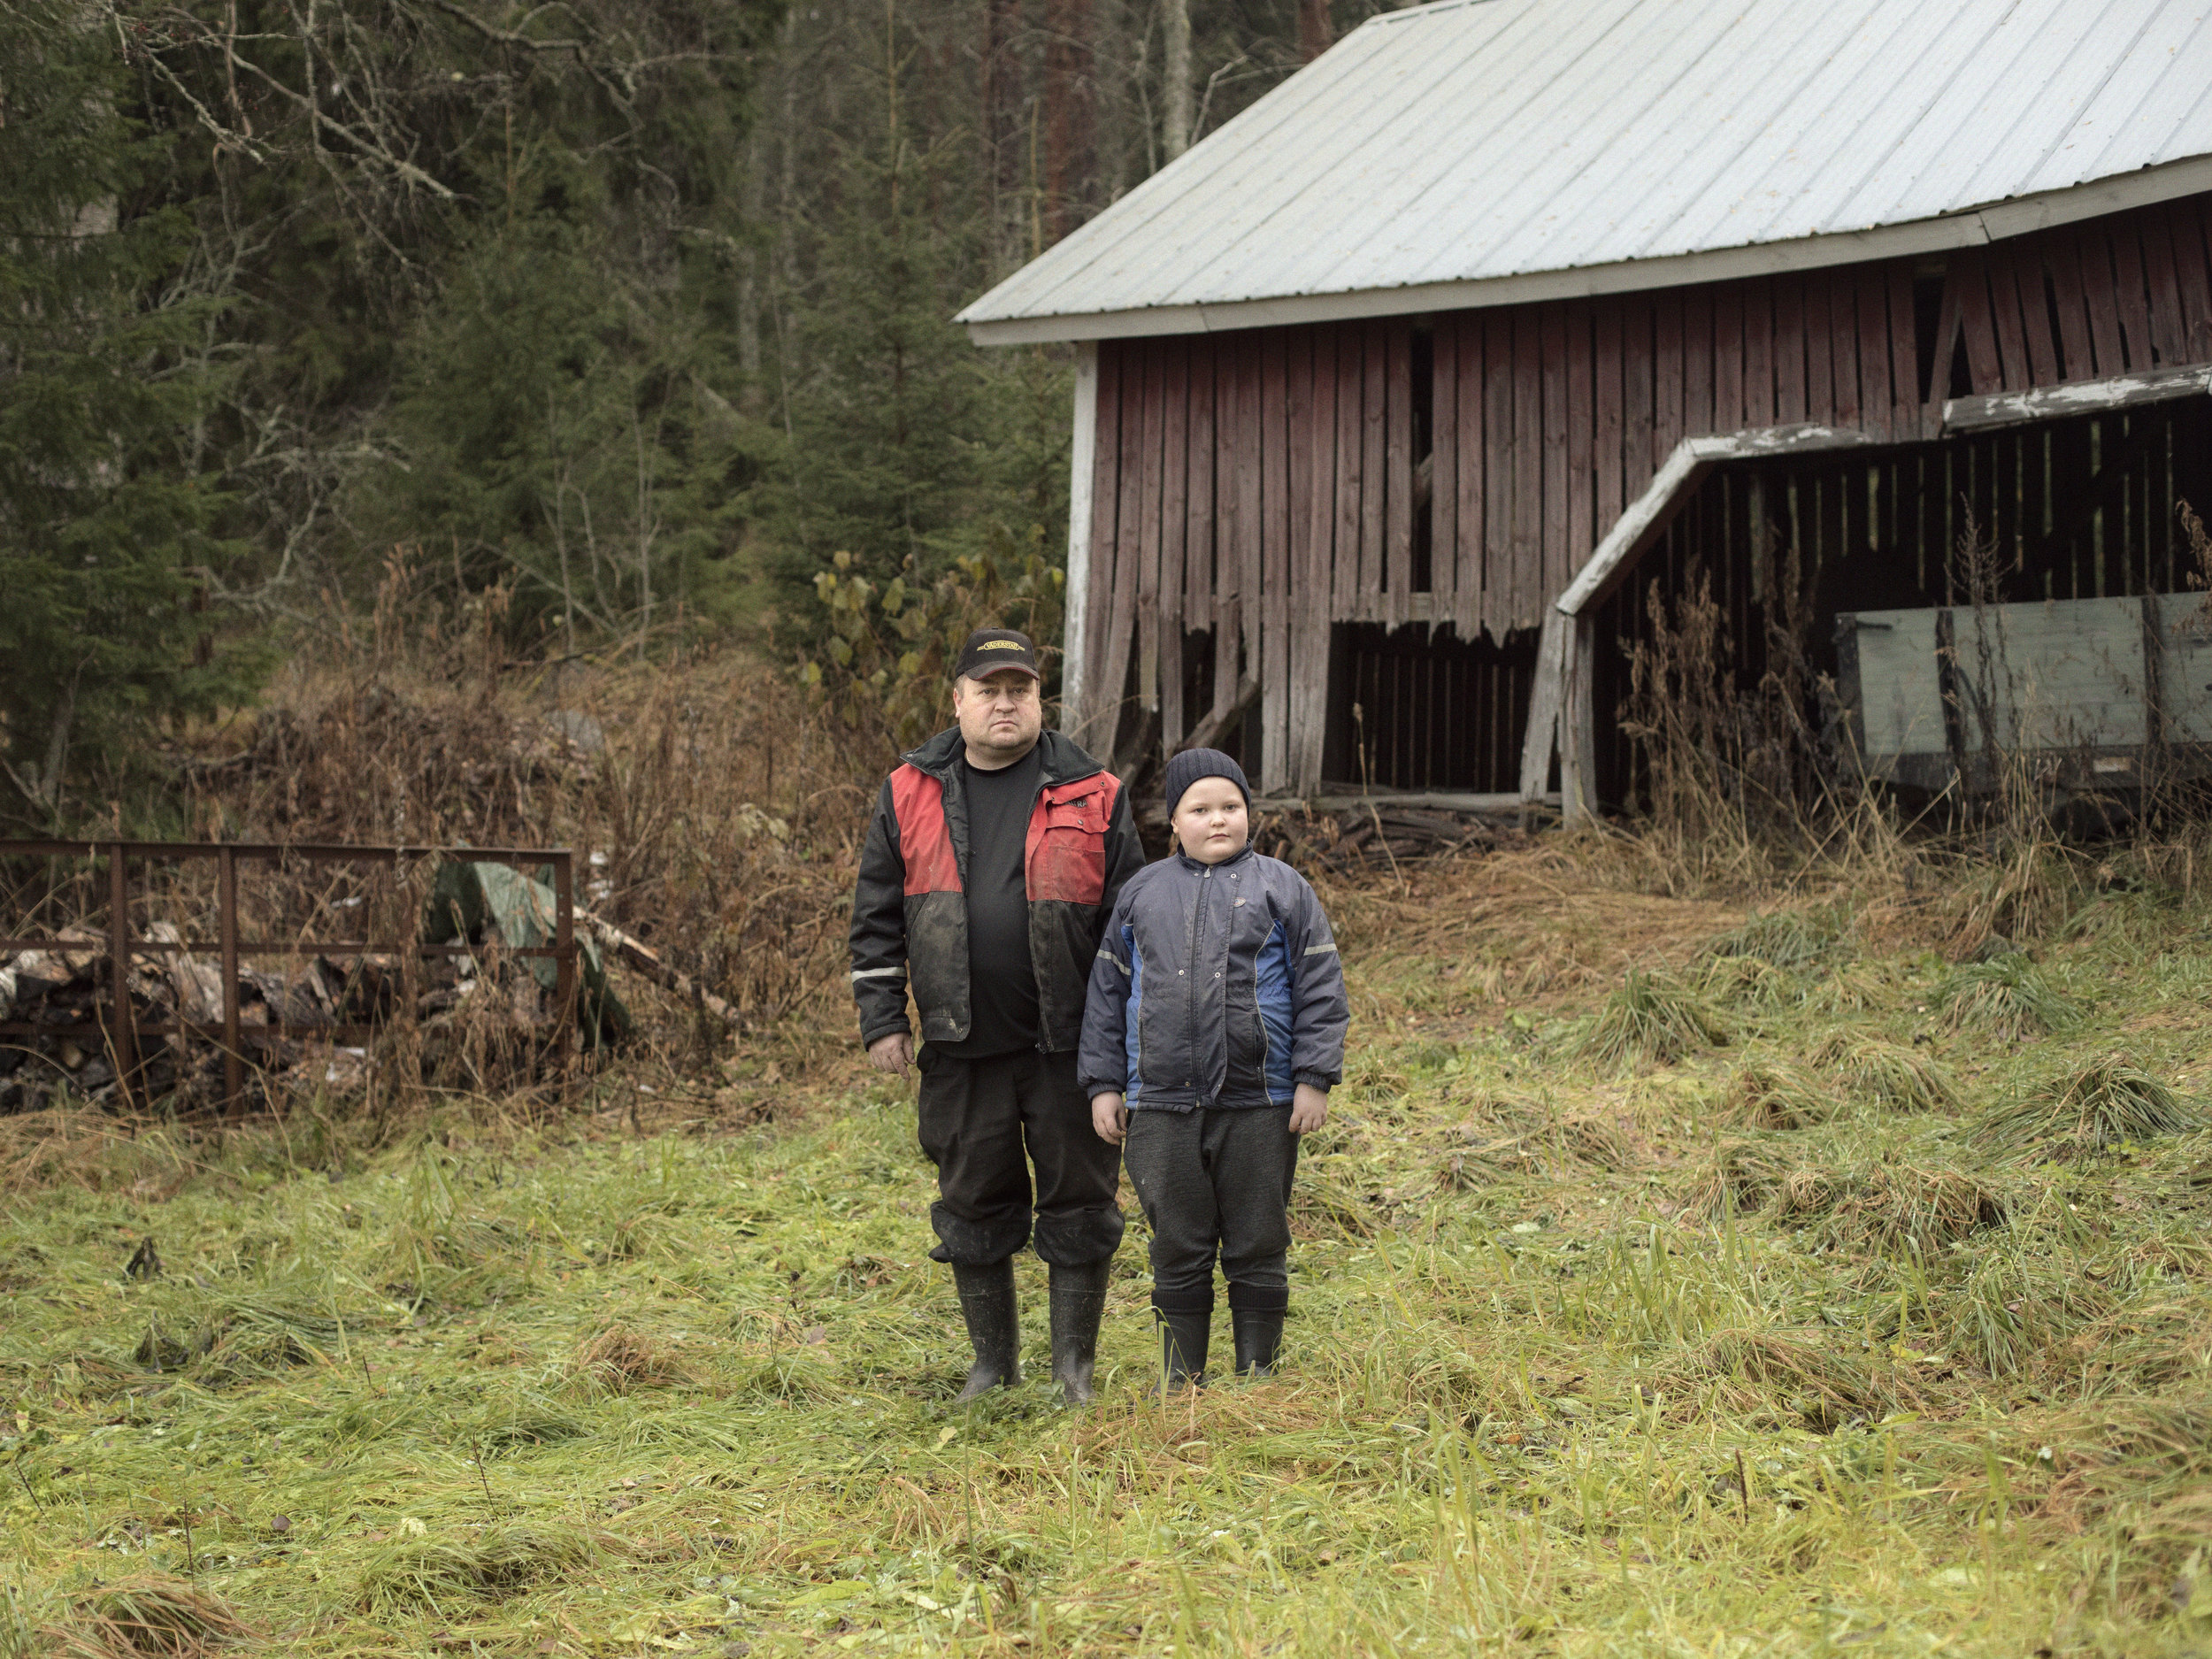 """""""It would feel terrible to leave the place after so many generations,"""" Esa Peijari says. His ancestors have grown the fields in the summer and cut down the trees in the winter all the way back to the Finnish independence. His son Paul-Henrik at eight is ready to take over the Peijari farm in the future."""